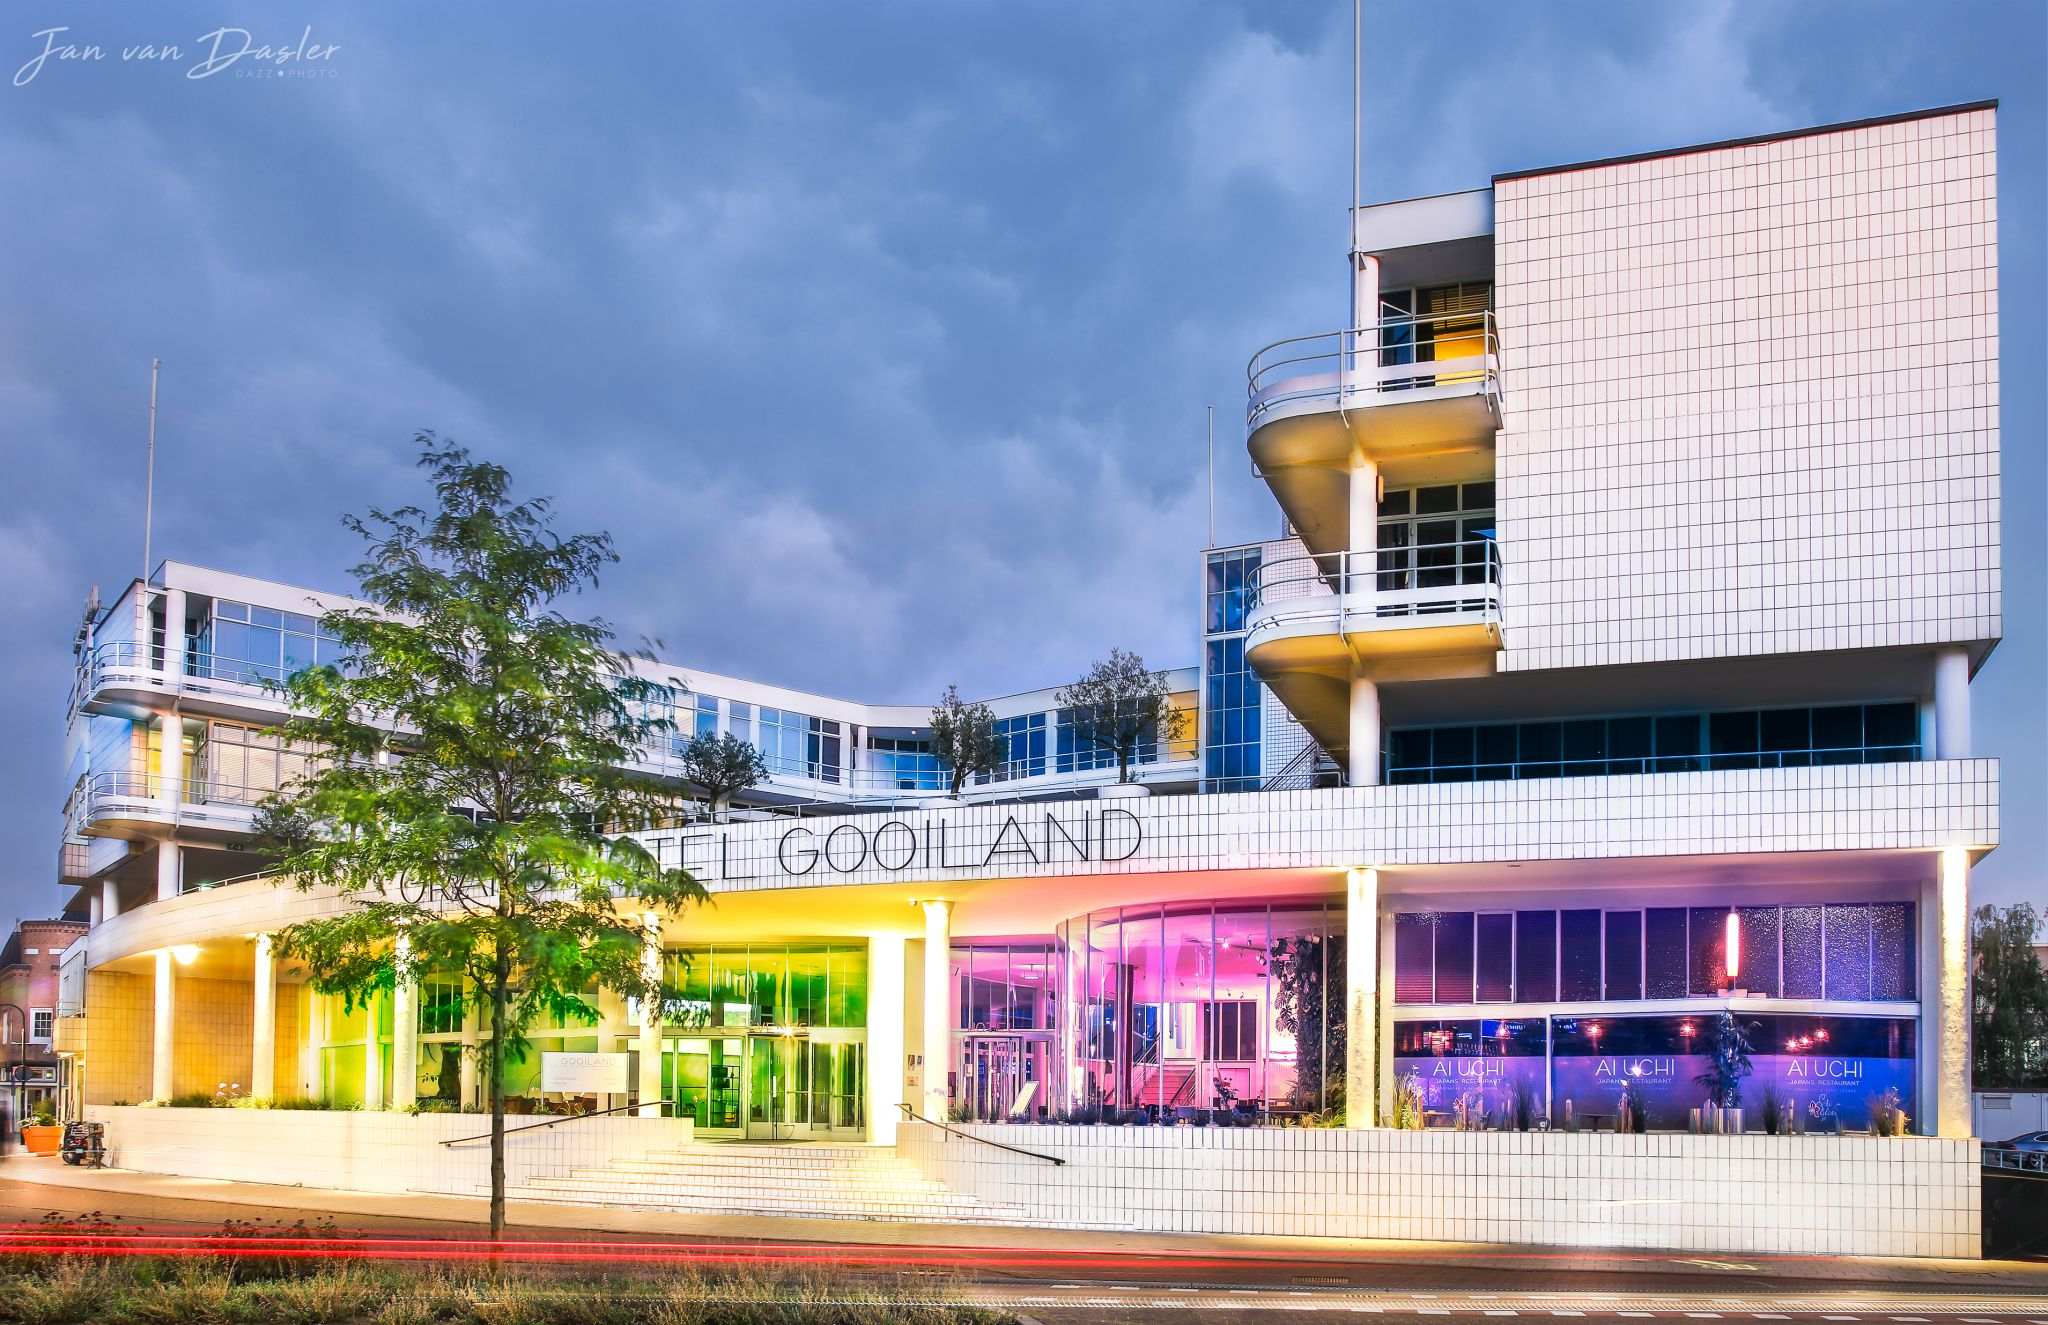 Grand Hotel & Theatre Gooiland in Hilversum, Netherlands